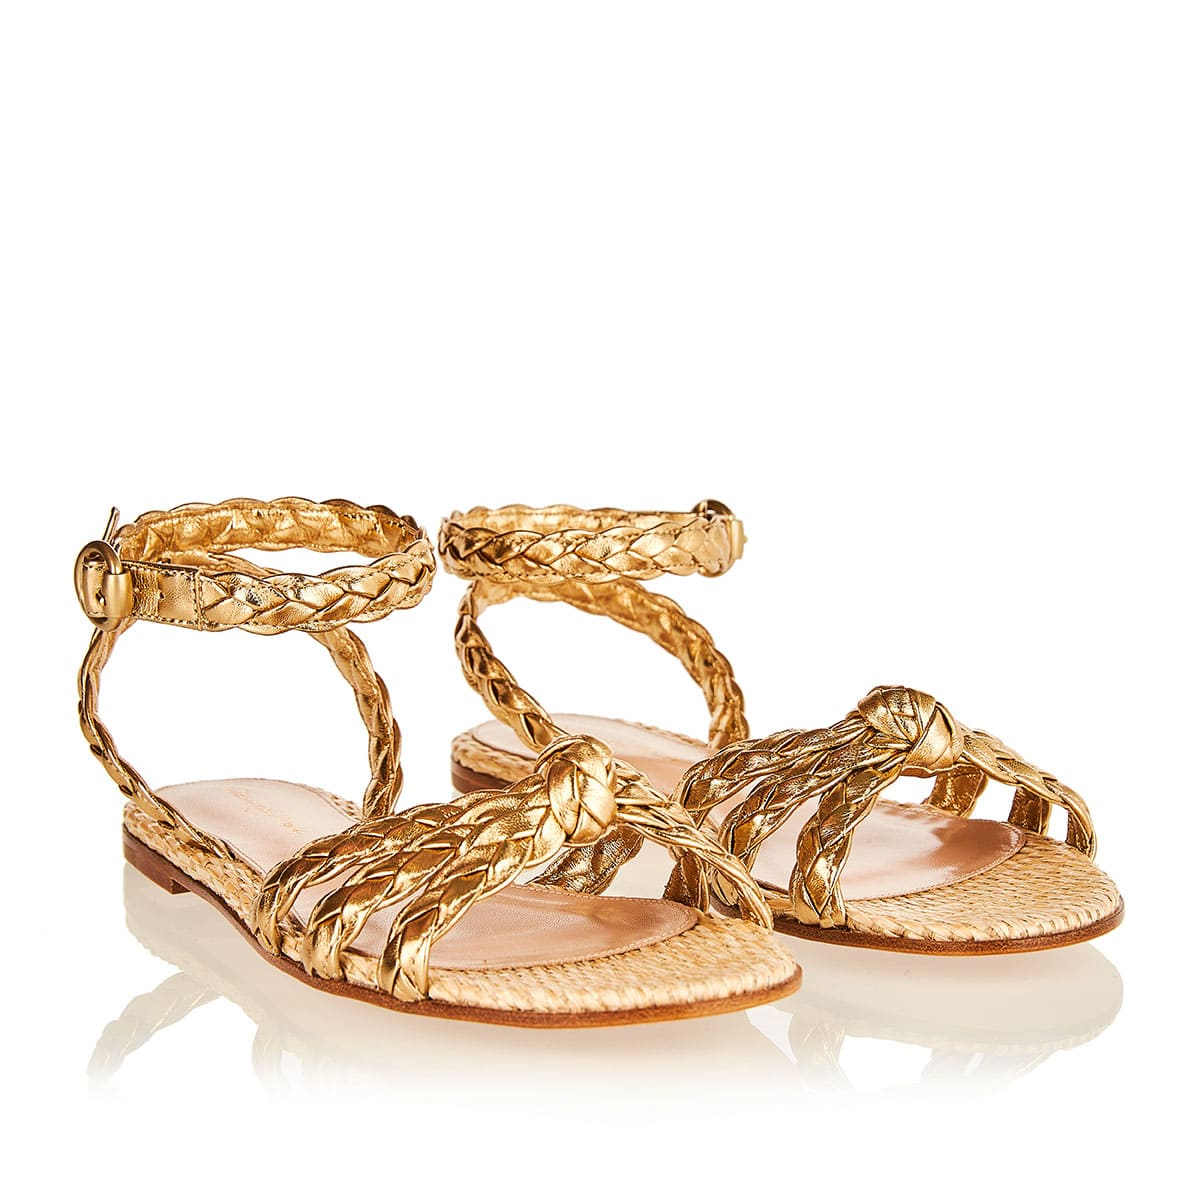 Braided leather and raffia flat sandals